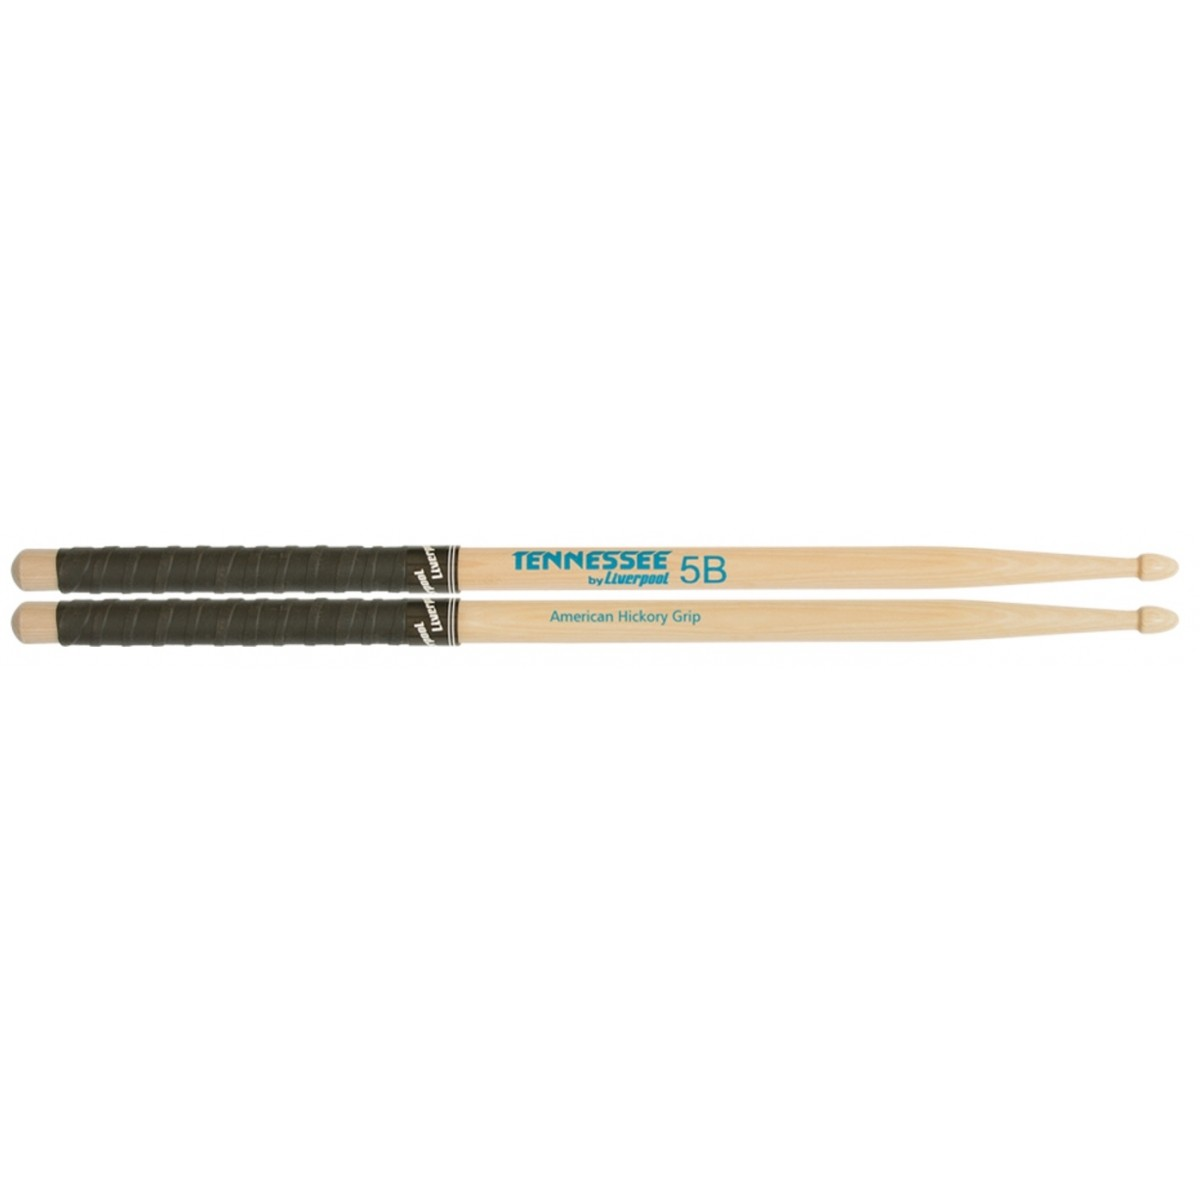 Baqueta Tennessee American Hickory Liverpool TNHY-5BMG